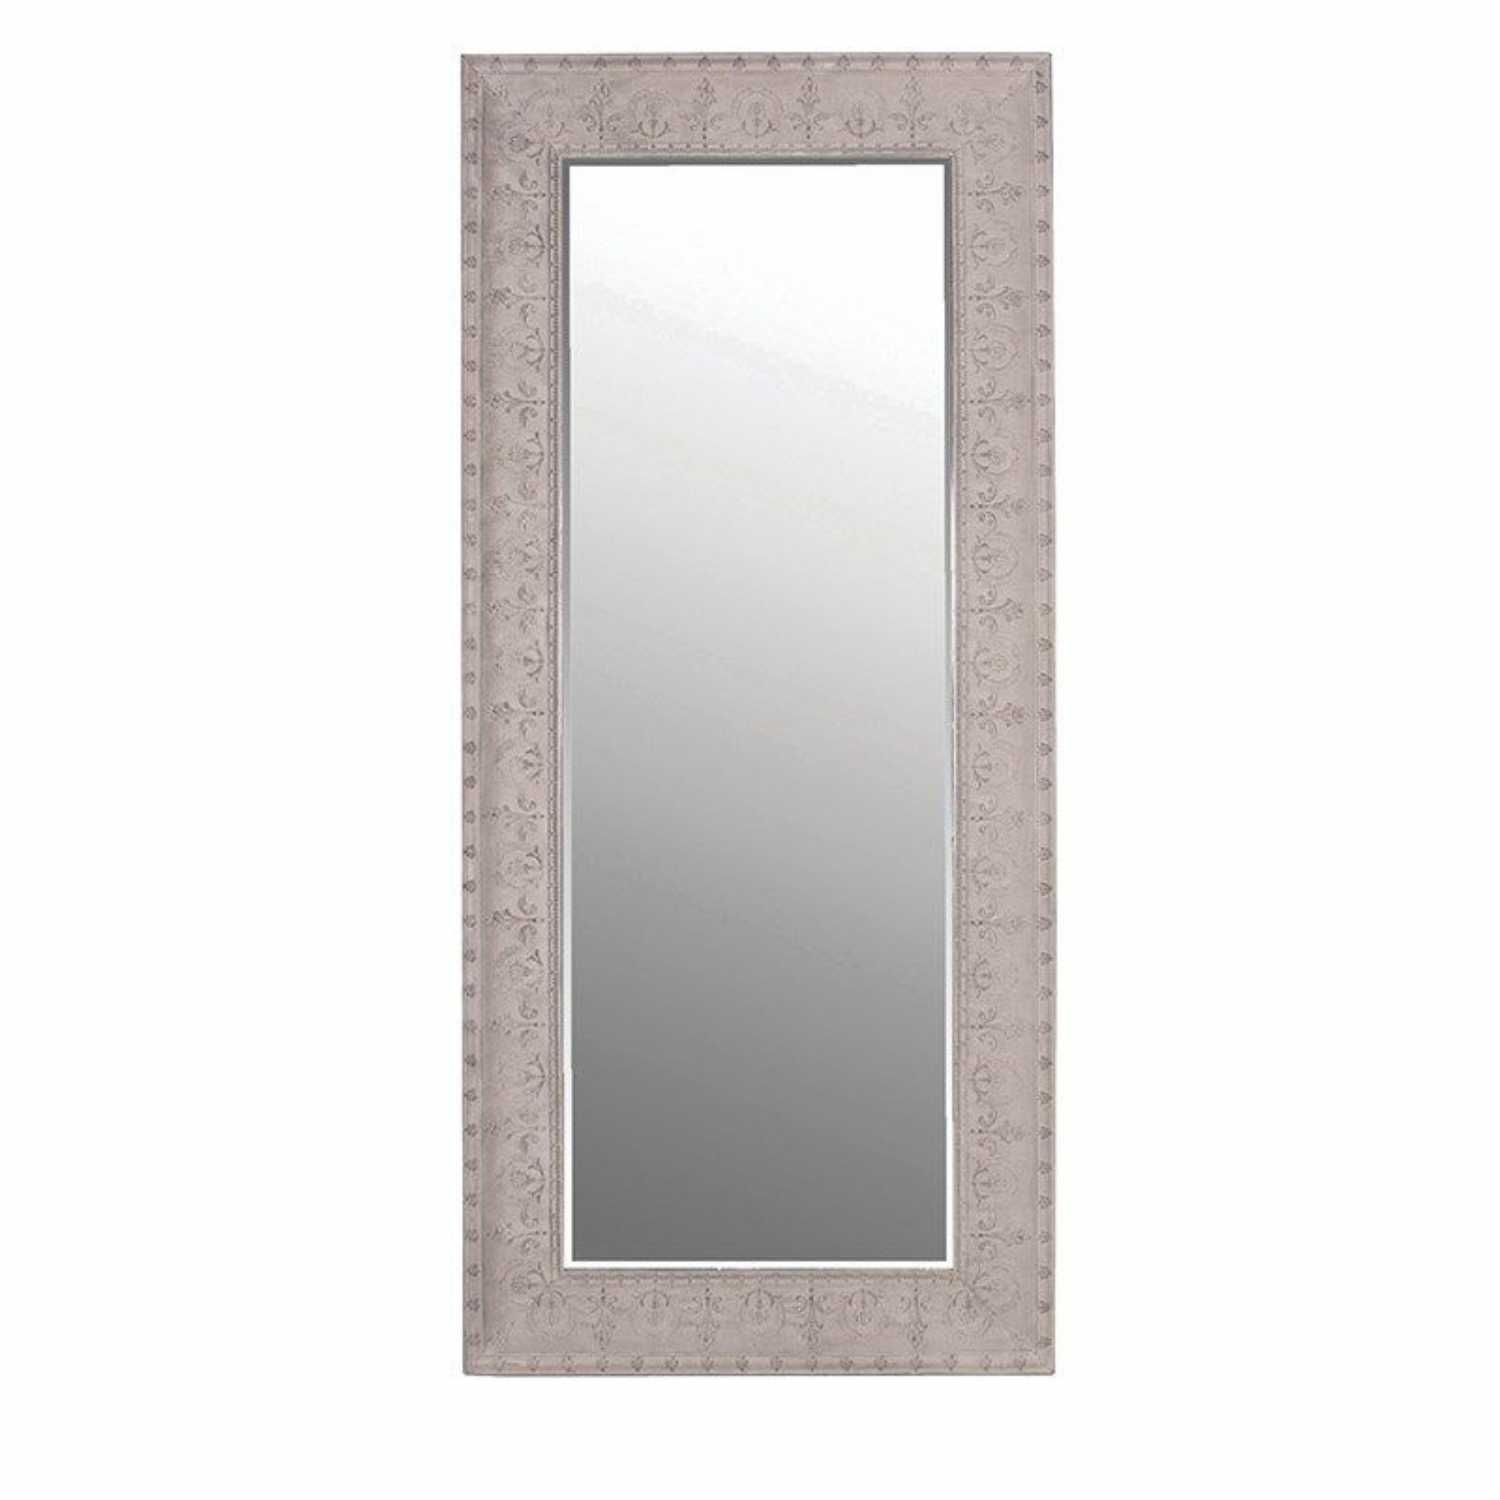 Large Grey Floral Metal Embossed Rectangular Tall Slim Wall Mirror Inside Slim Wall Mirror (Image 6 of 15)